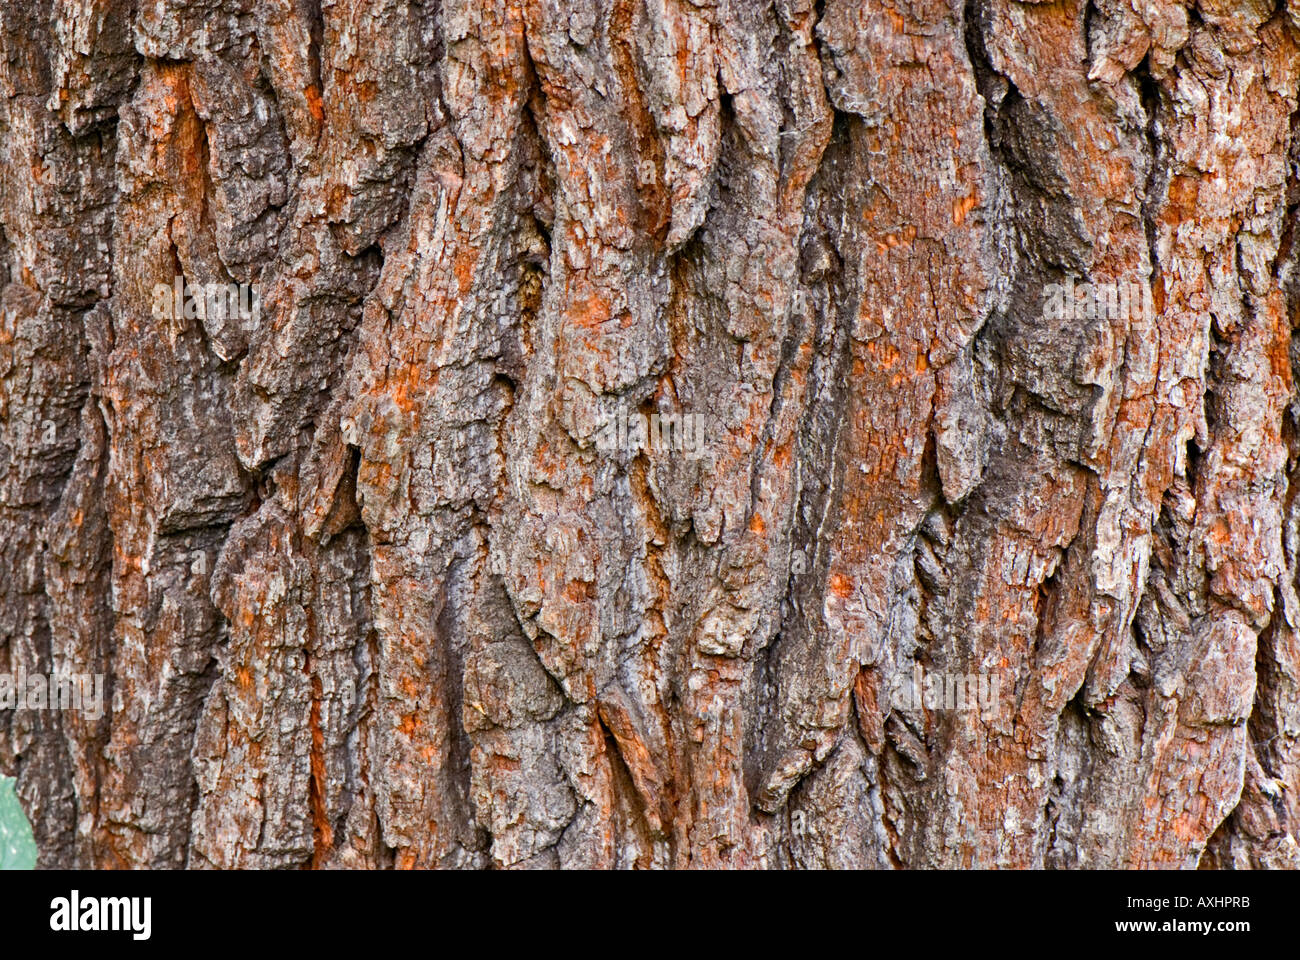 Bark of an old oak tree in Epping Forrest - Stock Image